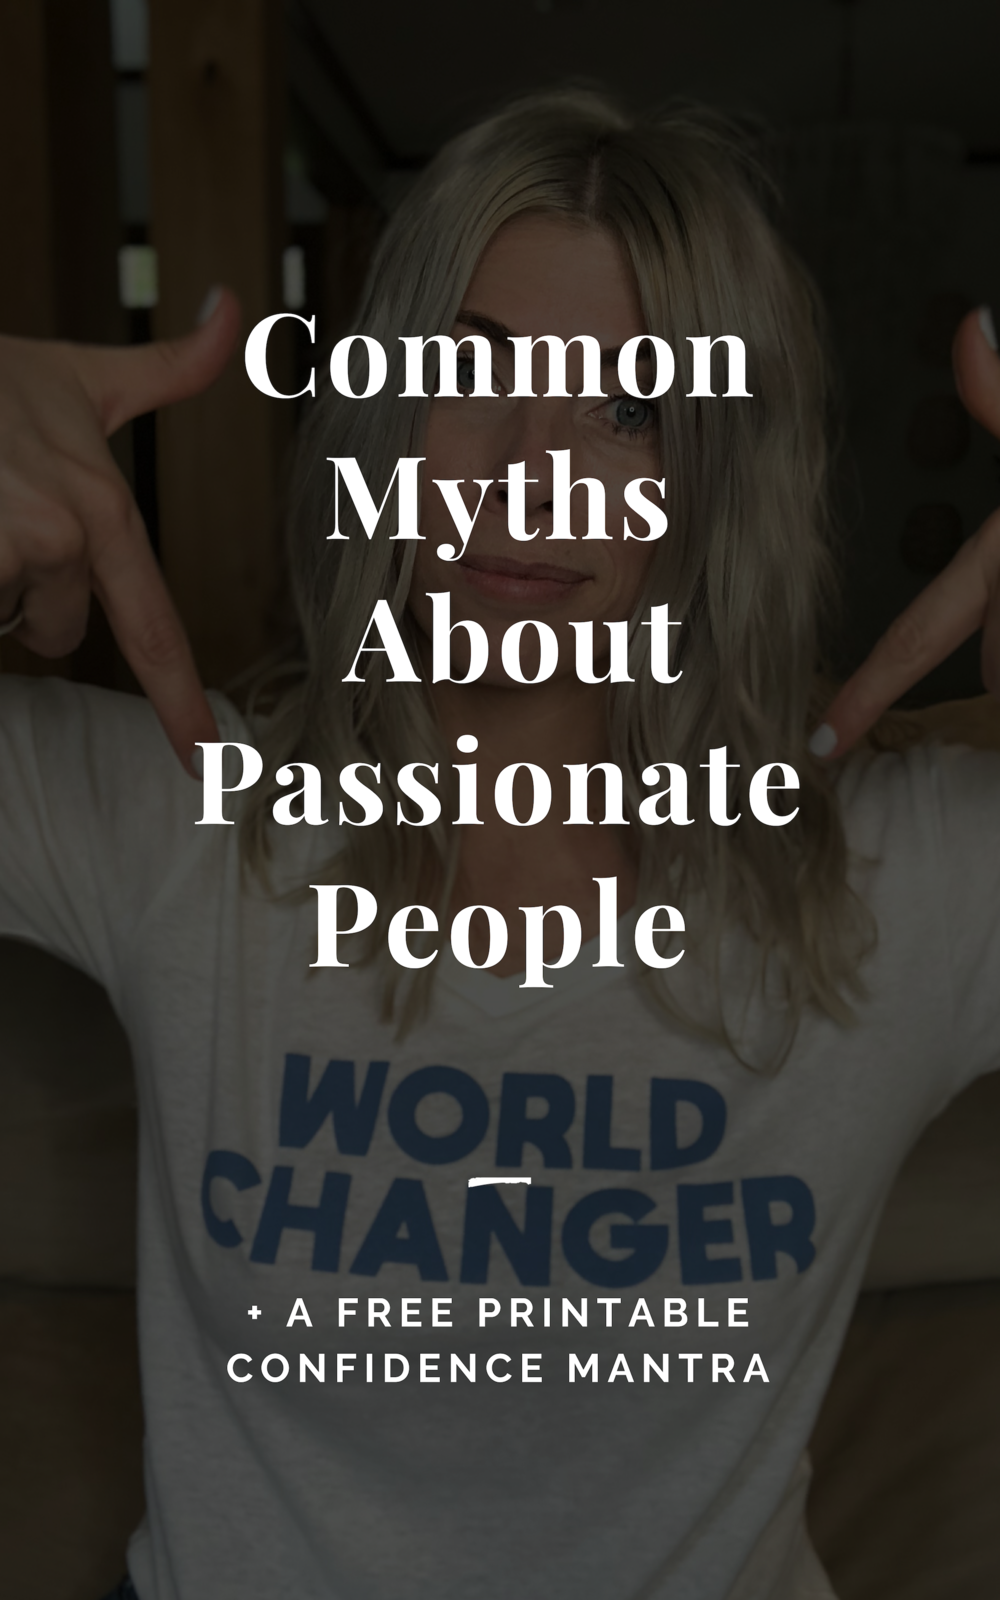 Common Myths About Passionate People